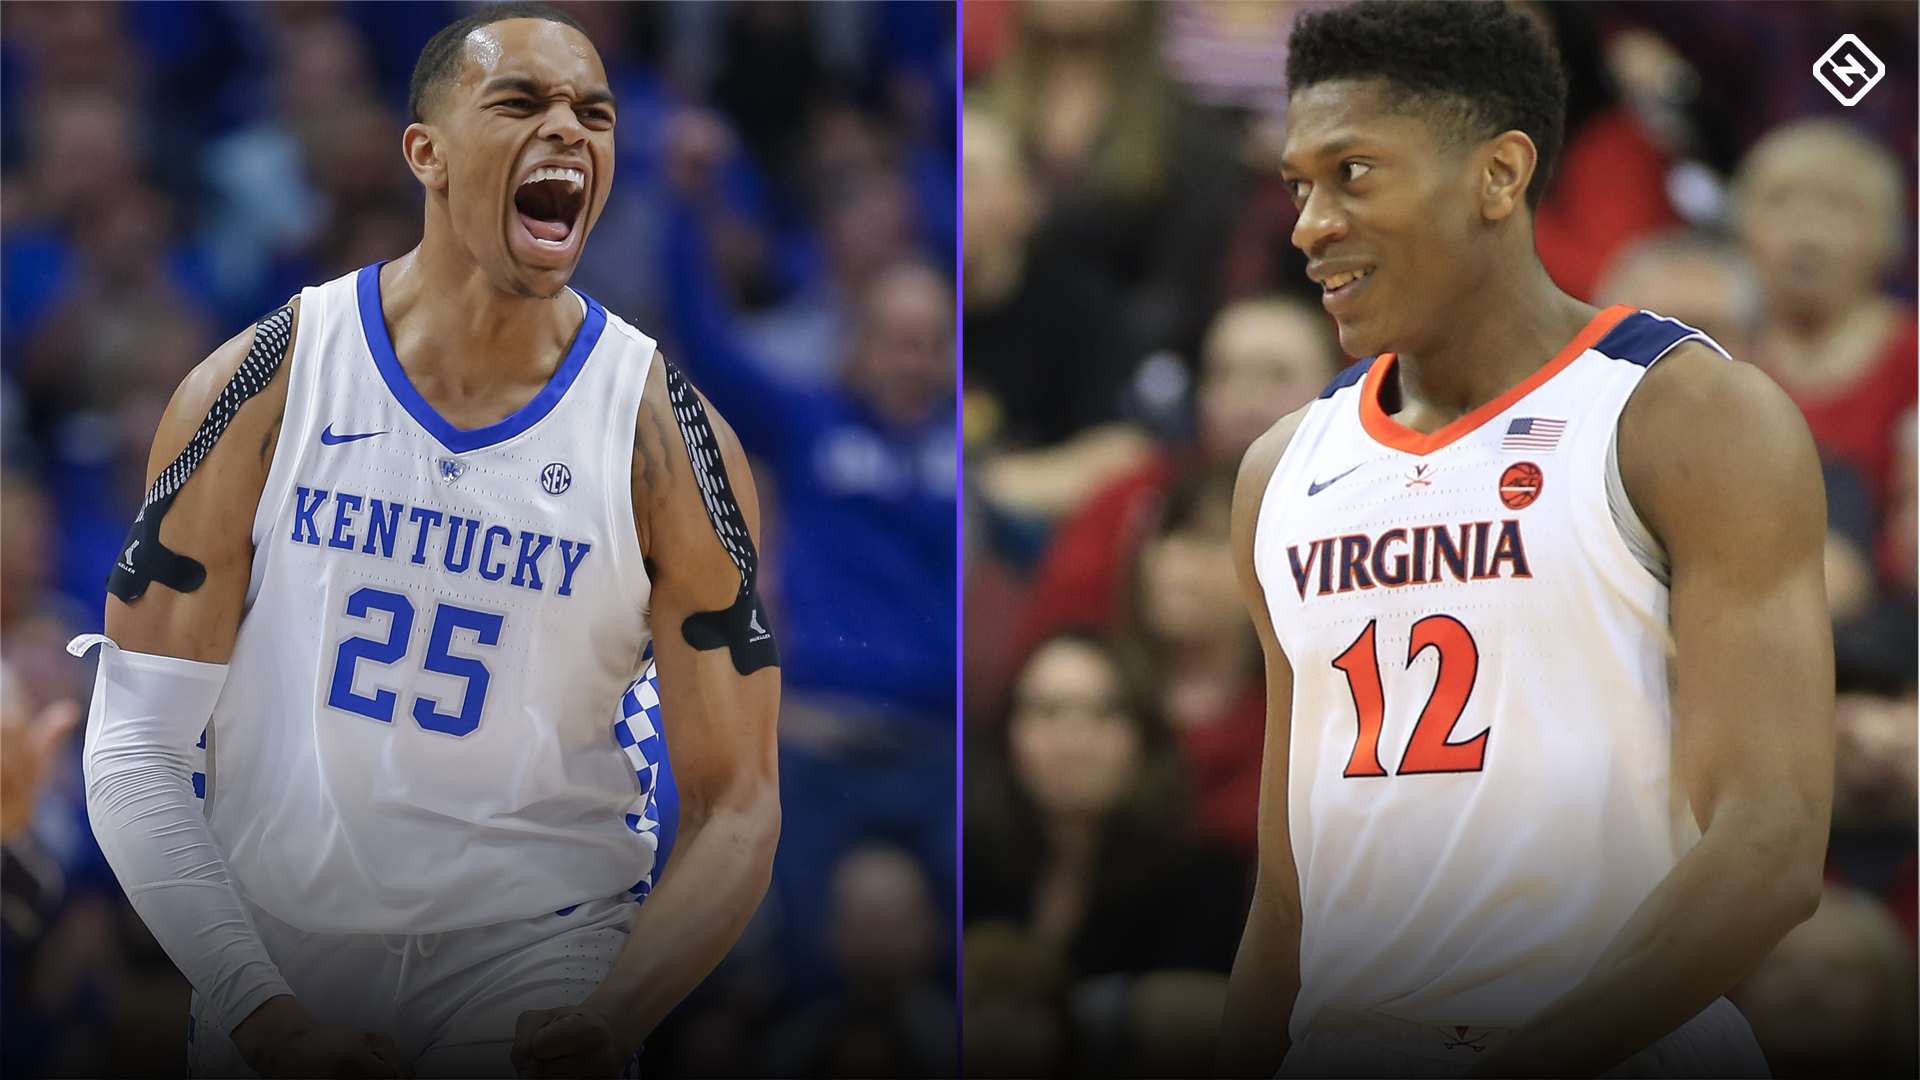 March Madness 2019: Perfect your bracket picks with TeamRankings' NCAA Tournament Predictor Tool